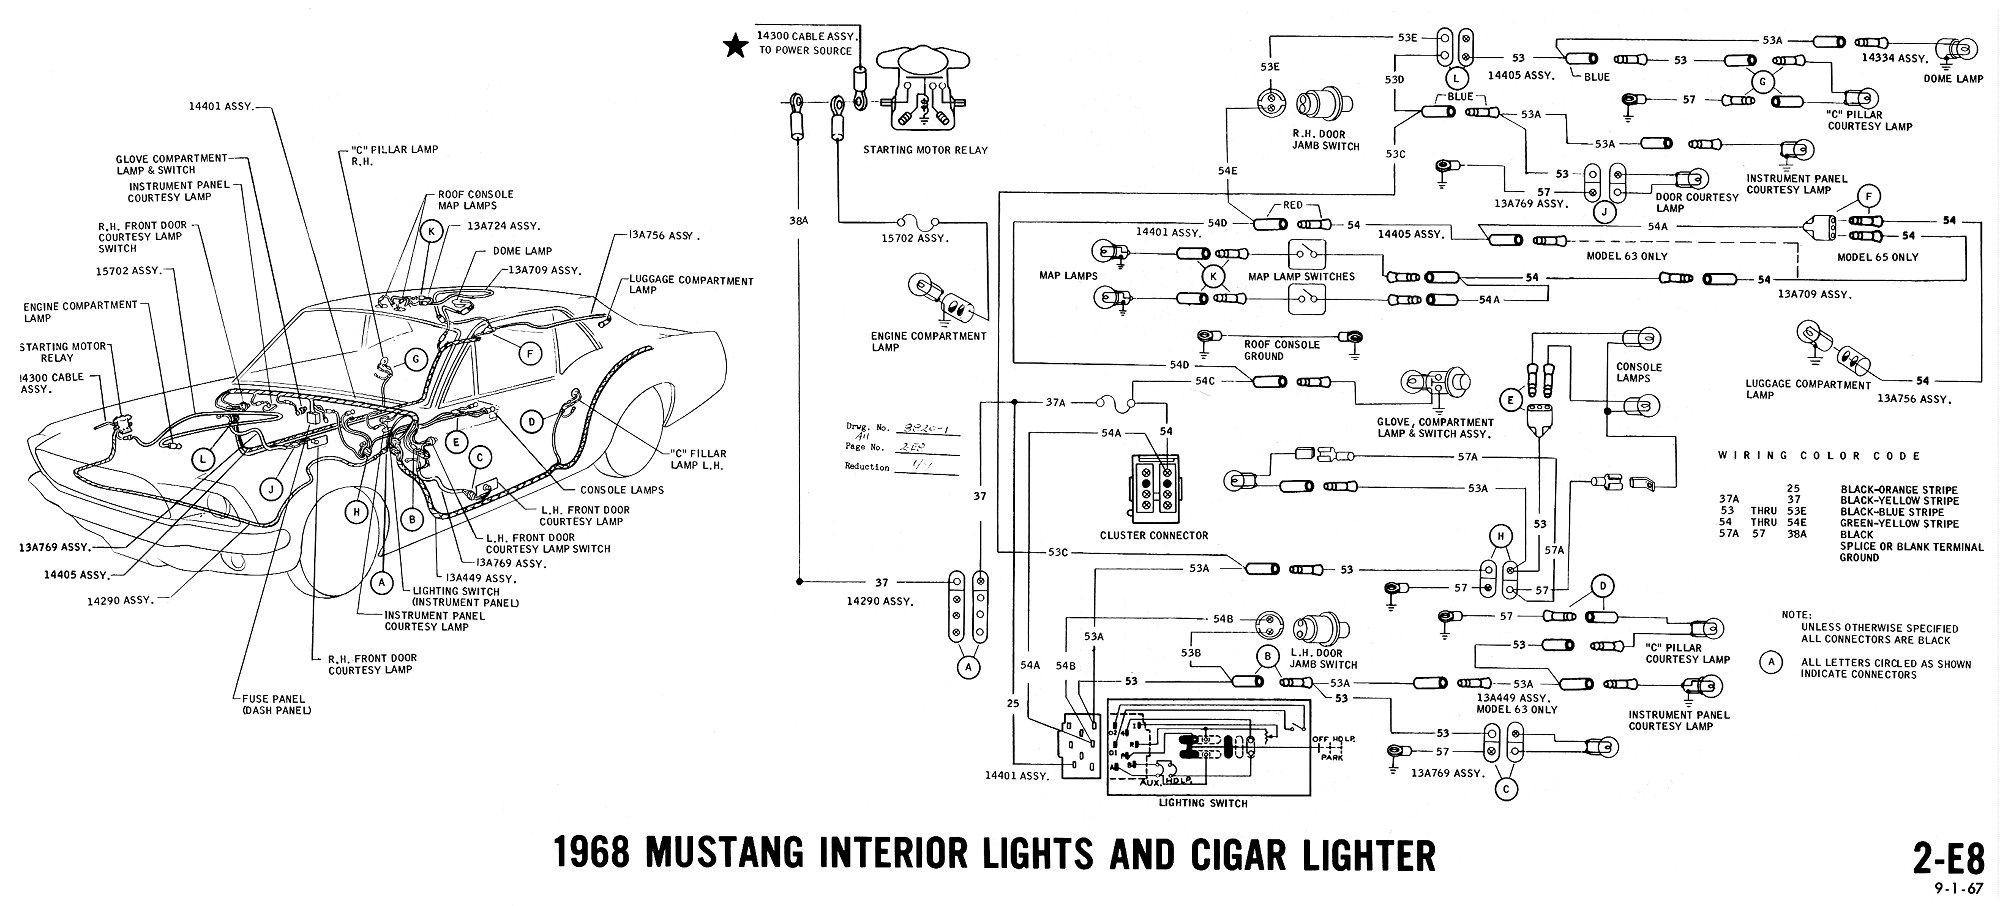 68 mustang turn signal wiring diagram data wiring diagrams \u2022 1969 mustang wiring harness diagram 1968 mustang wiring diagrams evolving software rh peterfranza com 1968 mustang turn signal wiring diagram 66 mustang turn signal wiring diagram